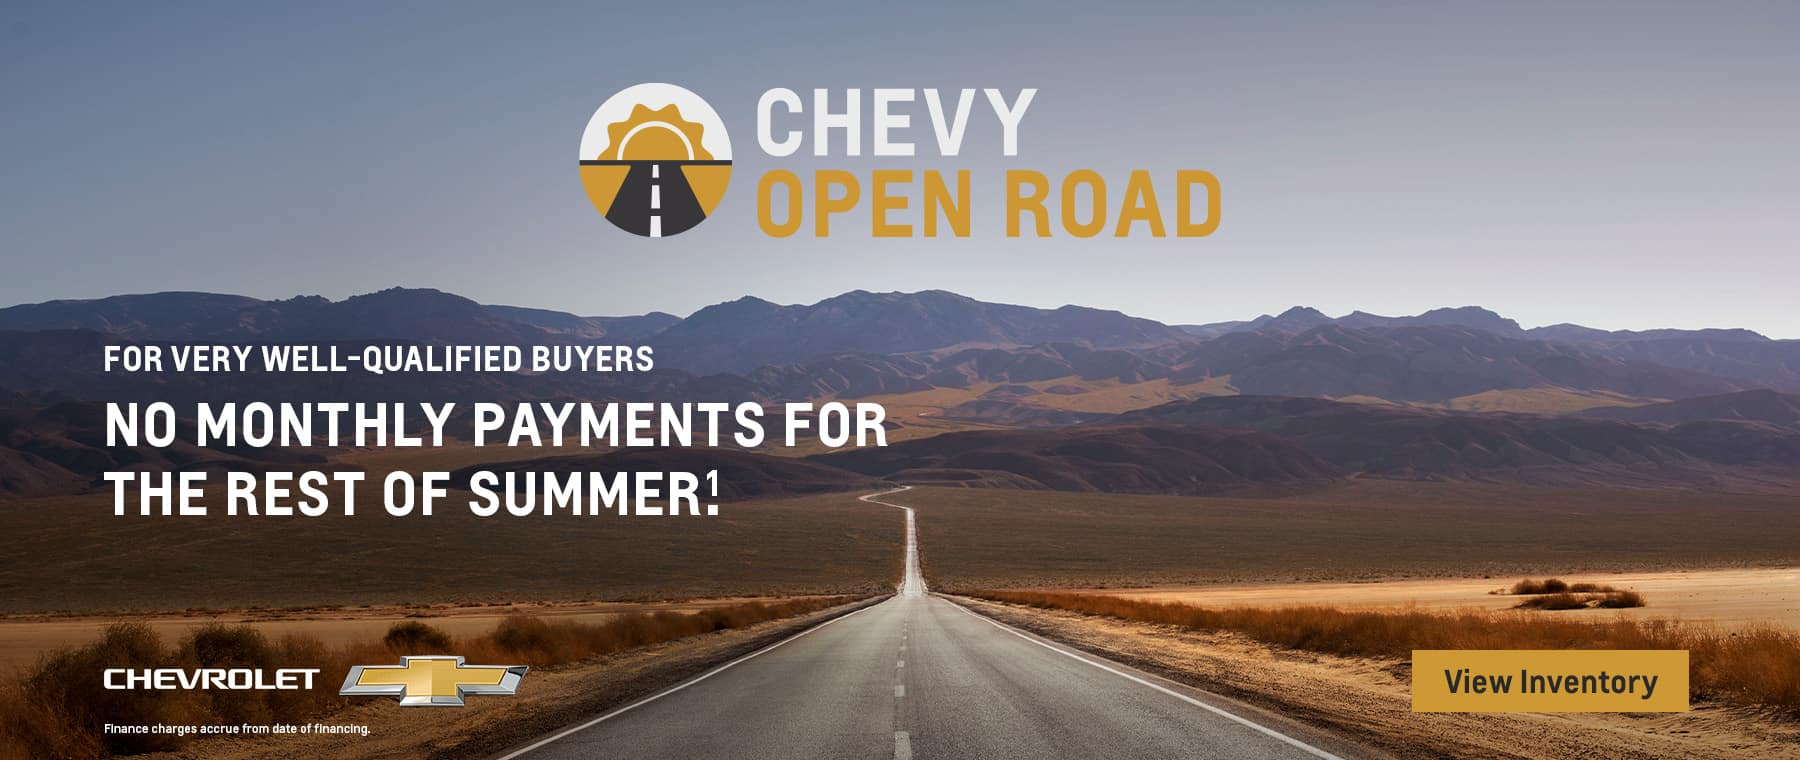 12_JULY_OPEN ROAD DEFERRAL GENERIC_NATIONAL_1800x760